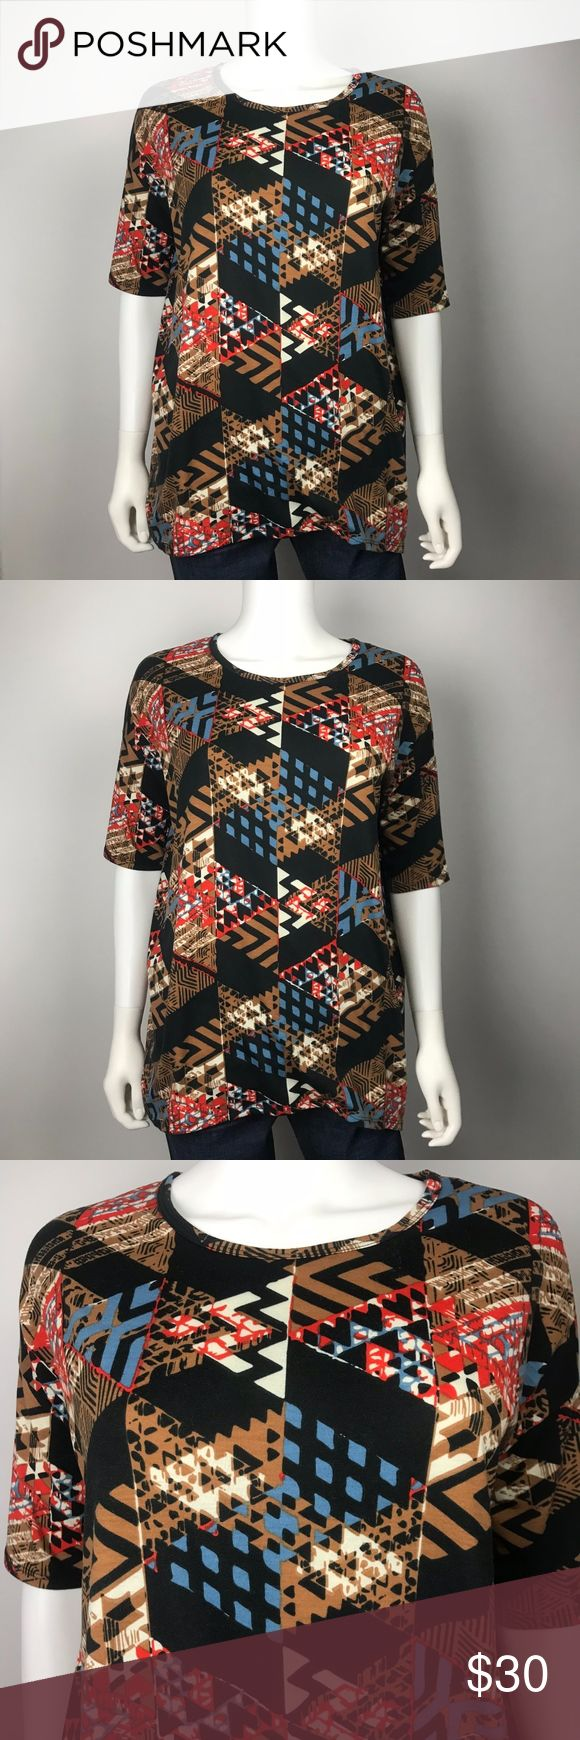 """Lularoe Abstract Geometric Print Irma Top Size- XXS  Condition- Gently worn, no visible flaws.  Measurements: Shoulder to shoulder- 23"""" Armpit to armpit- 48"""" LuLaRoe Tops Tees - Short Sleeve"""